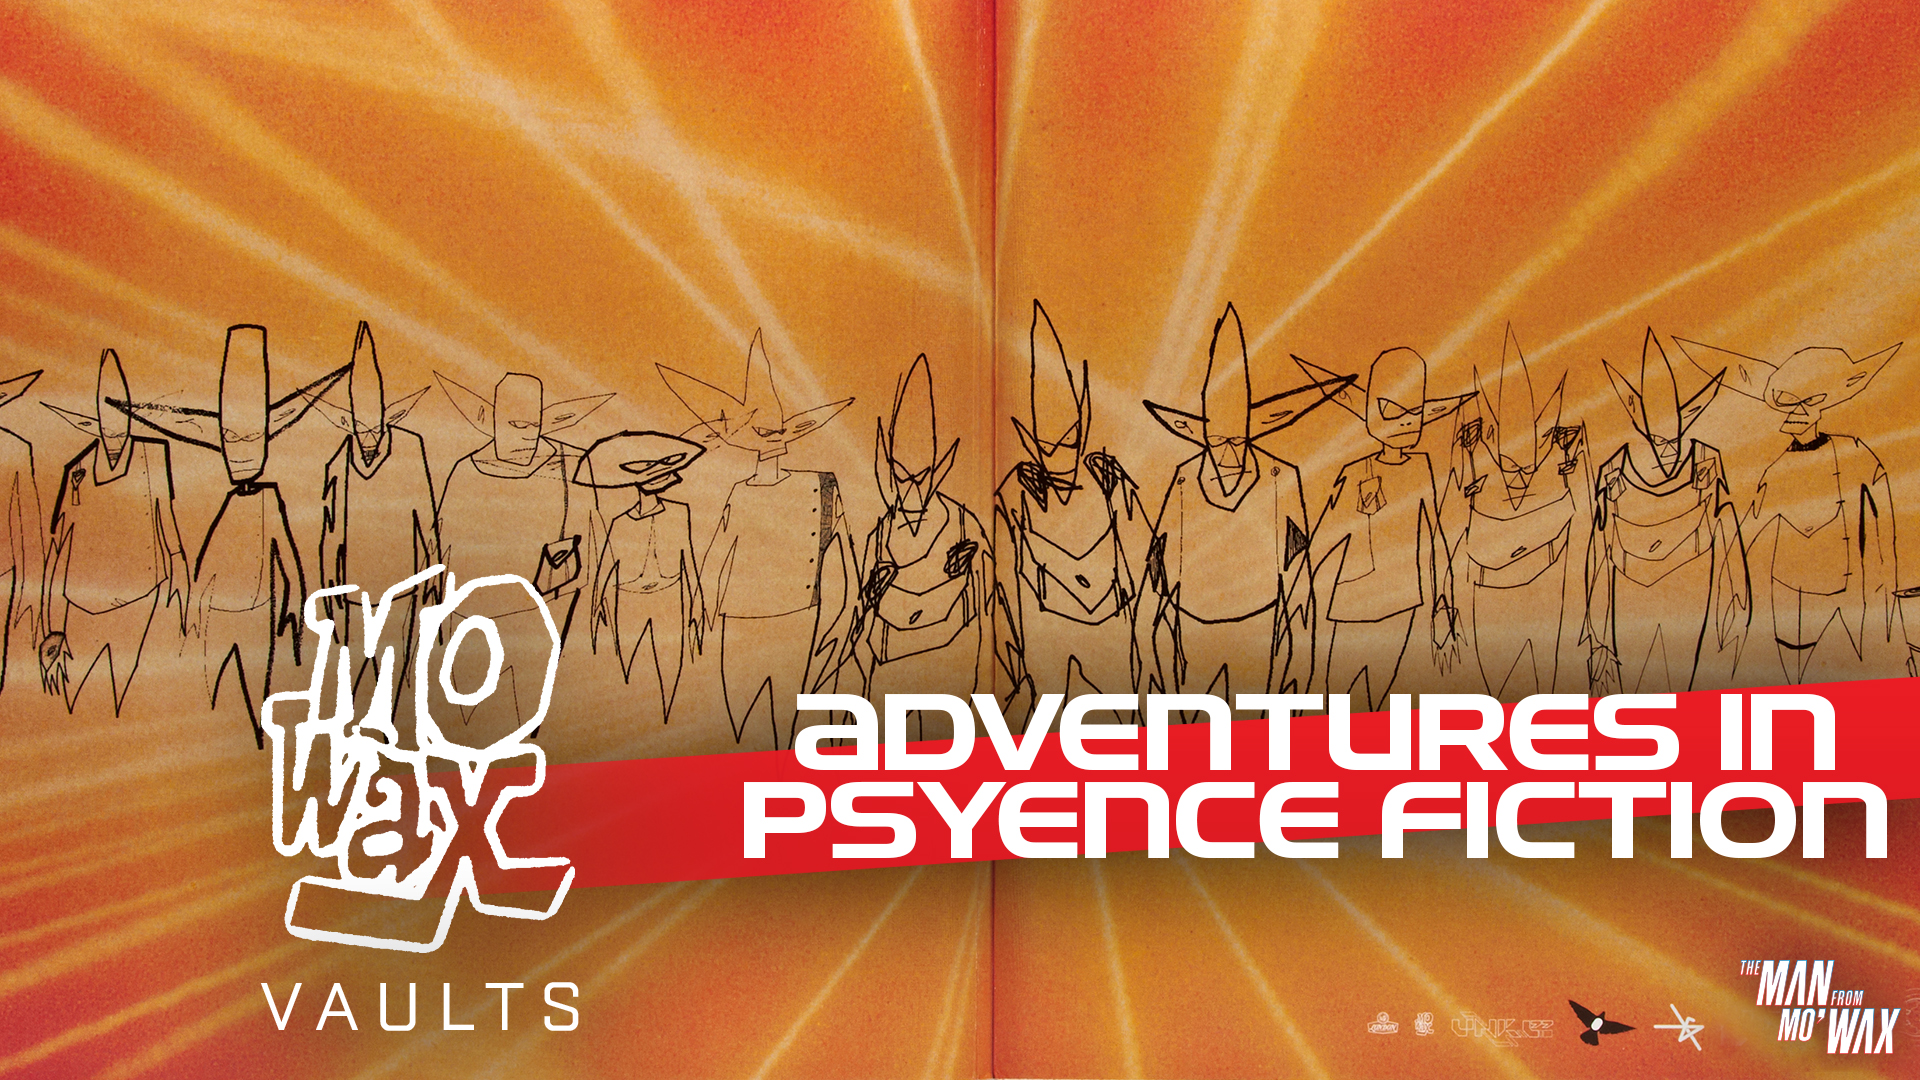 Adventures in Psyence Fiction (2018, 31 mins)  Featurette on the making of UNKLE's seminal album Psyence Fiction